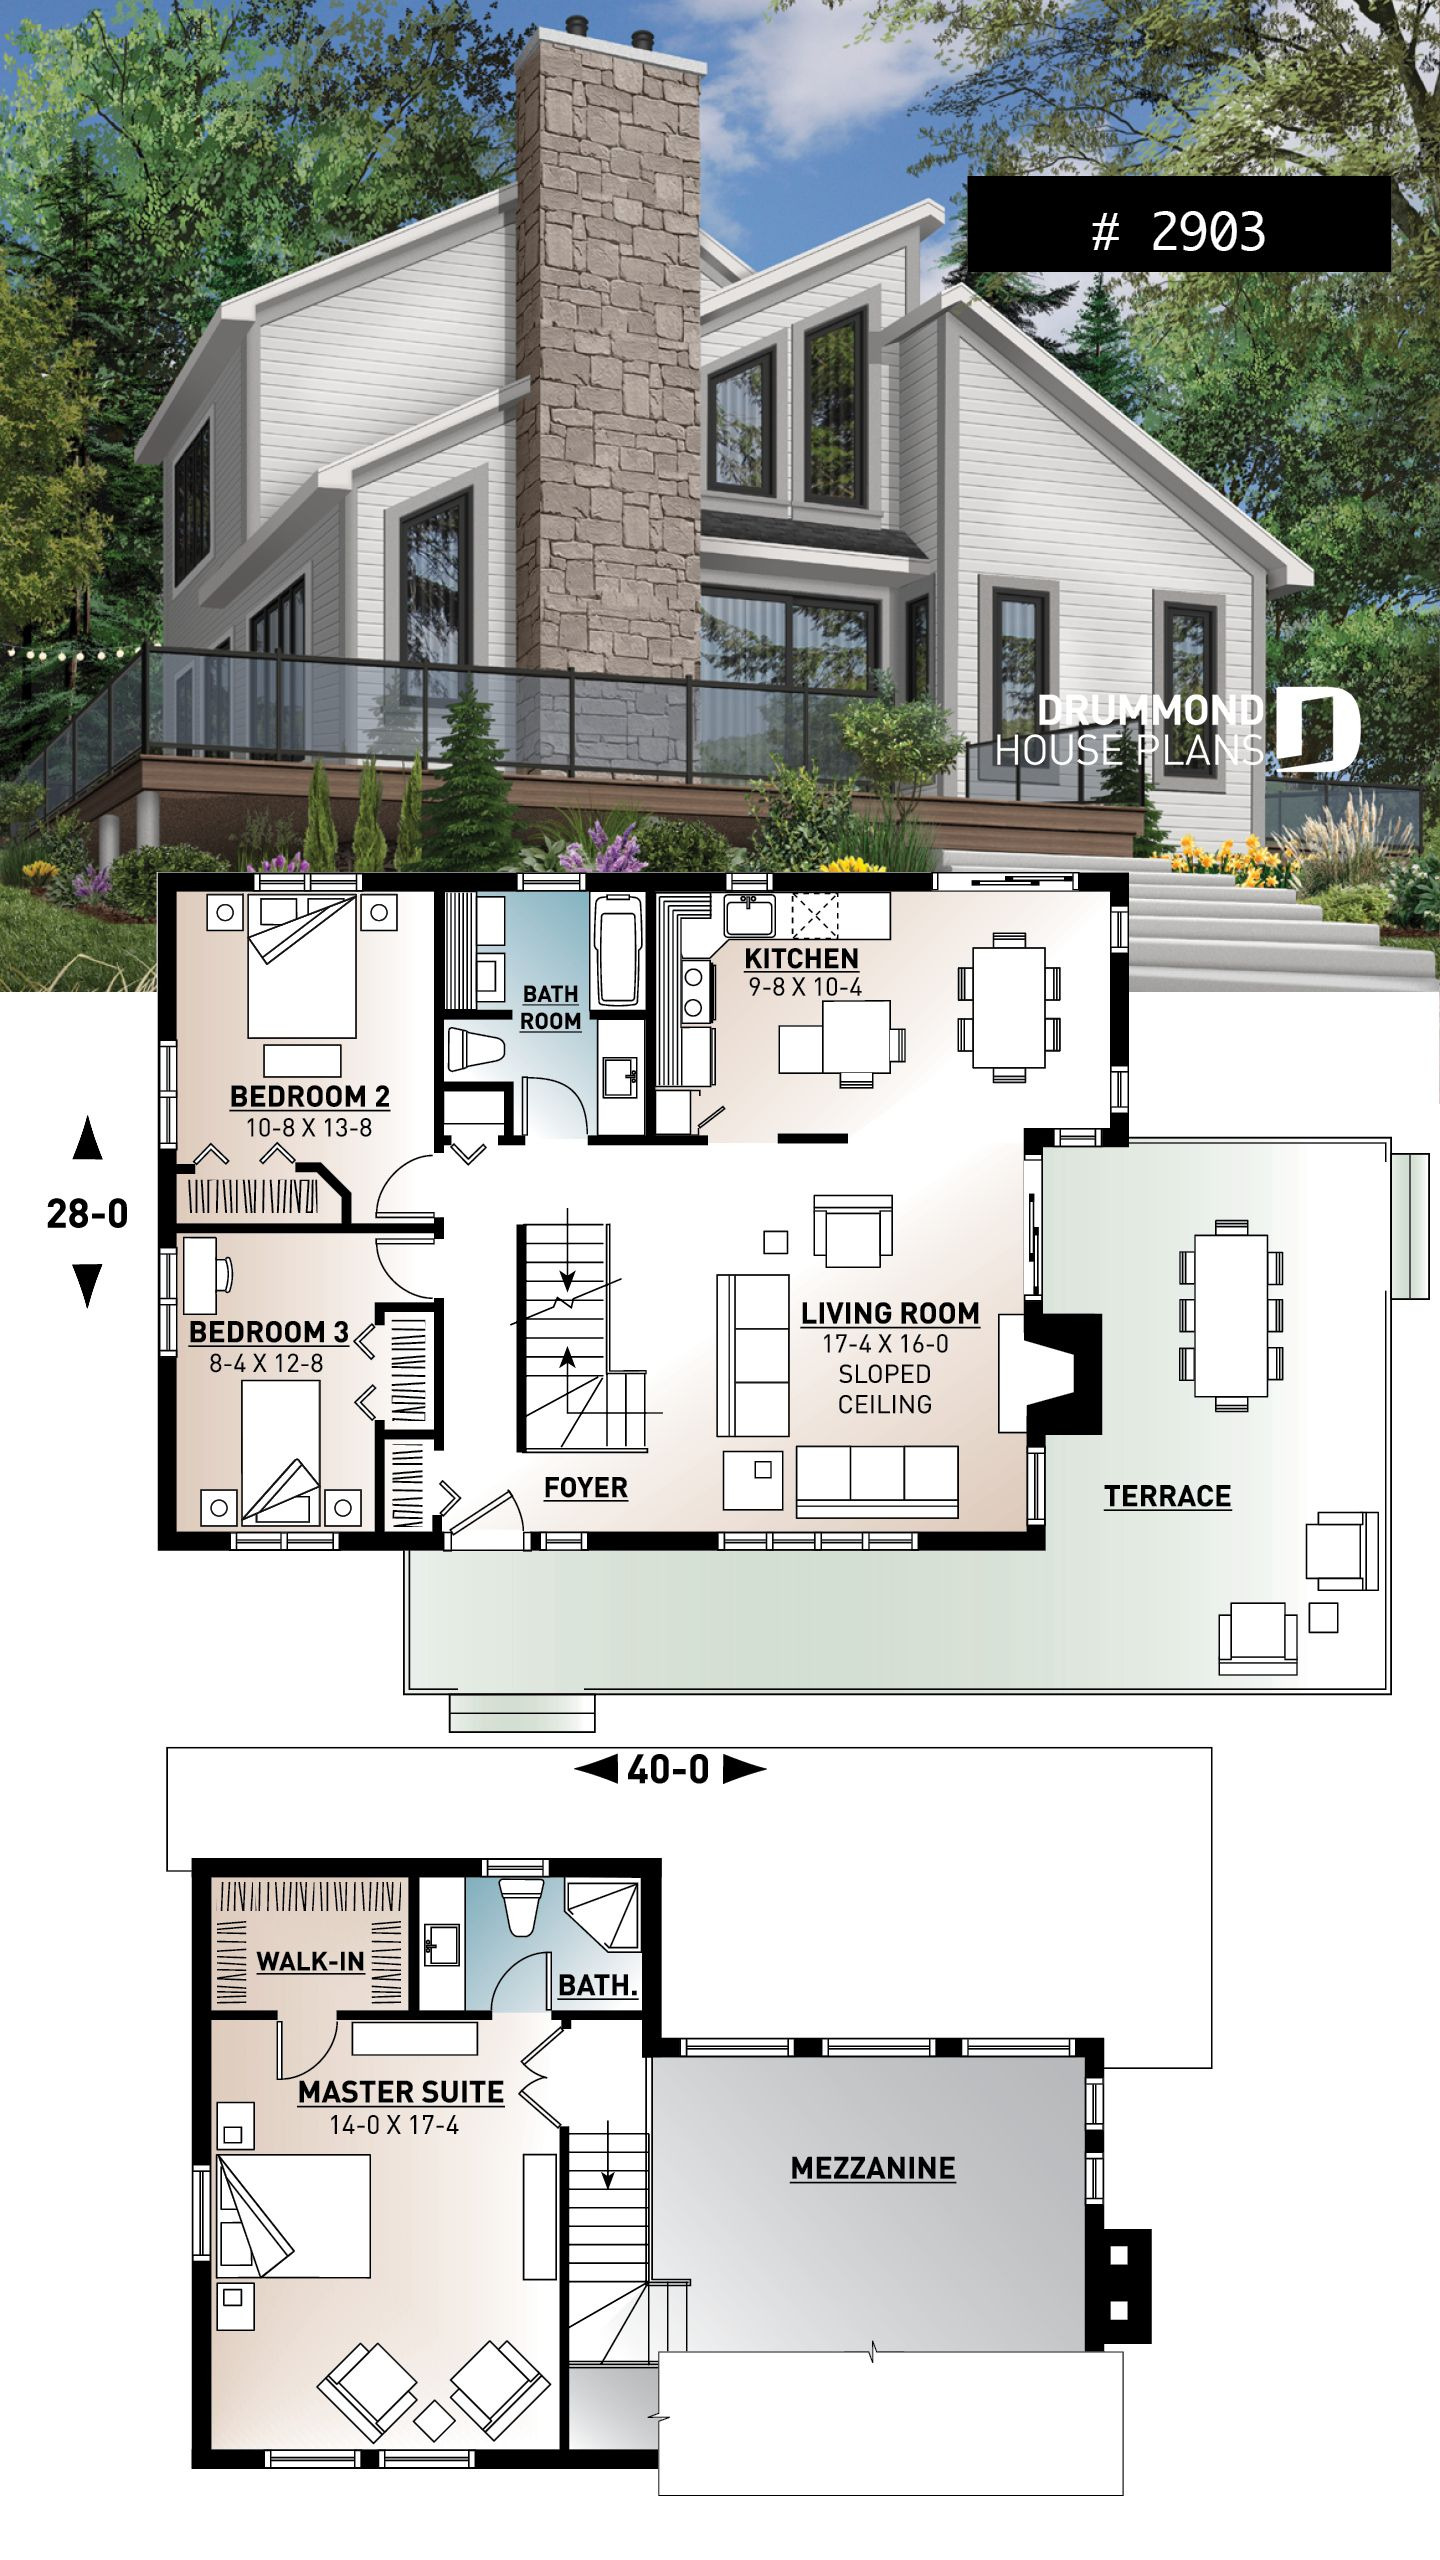 Open Concept House Plans Luxury House Plan the Whitespire No 2903